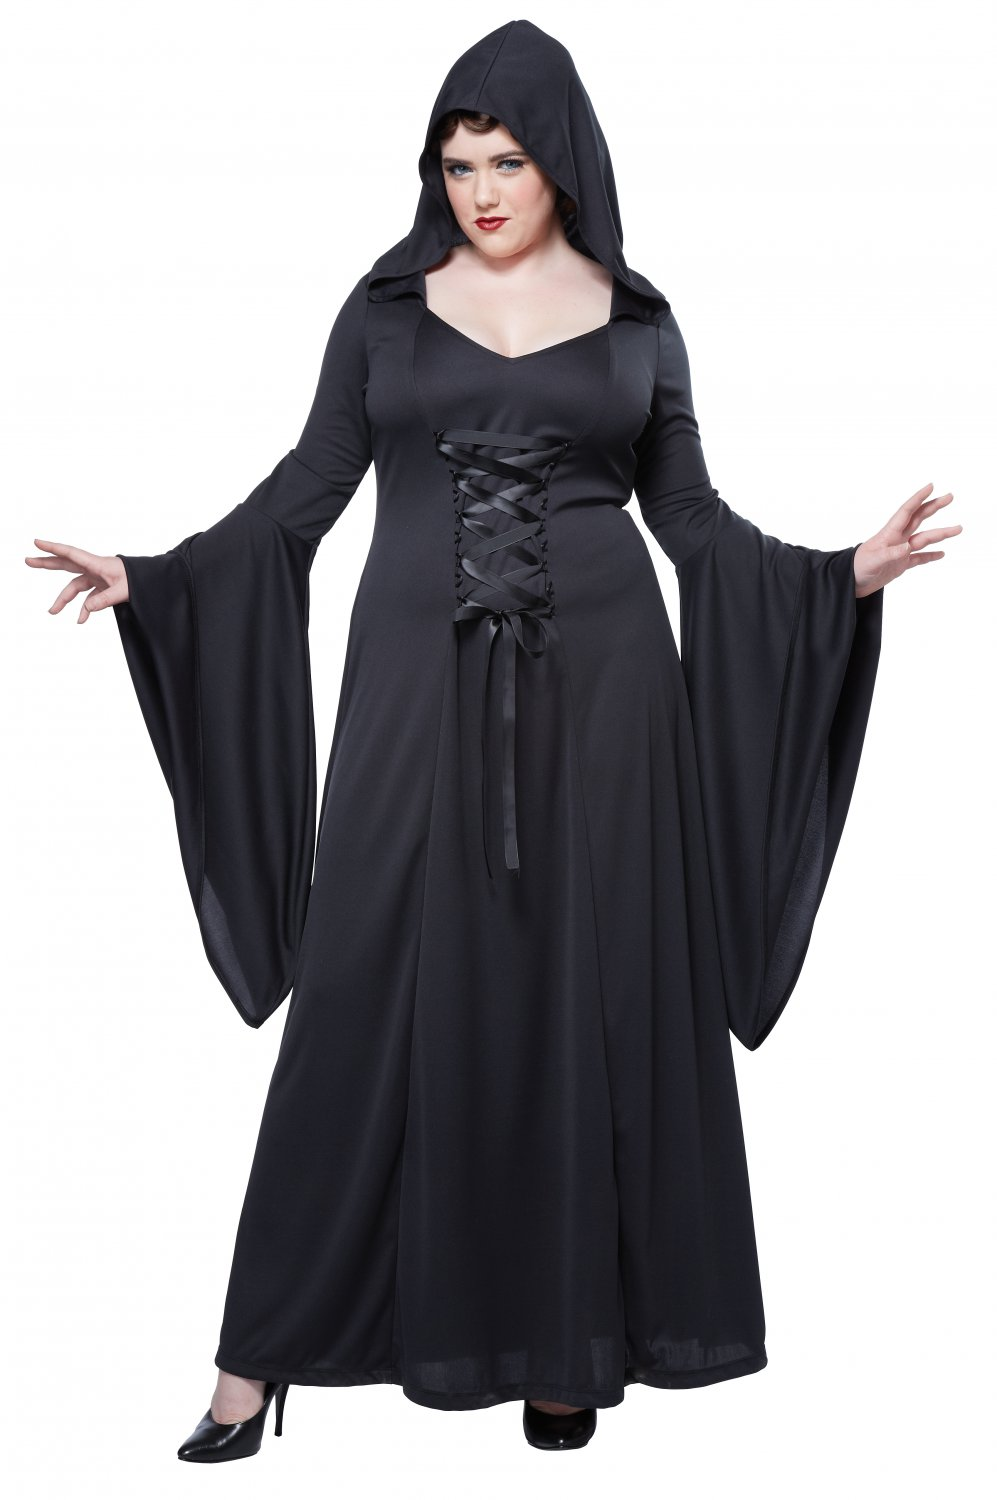 Deluxe Hooded Robe Plus Size Adult Costume: 2X-Large #01735